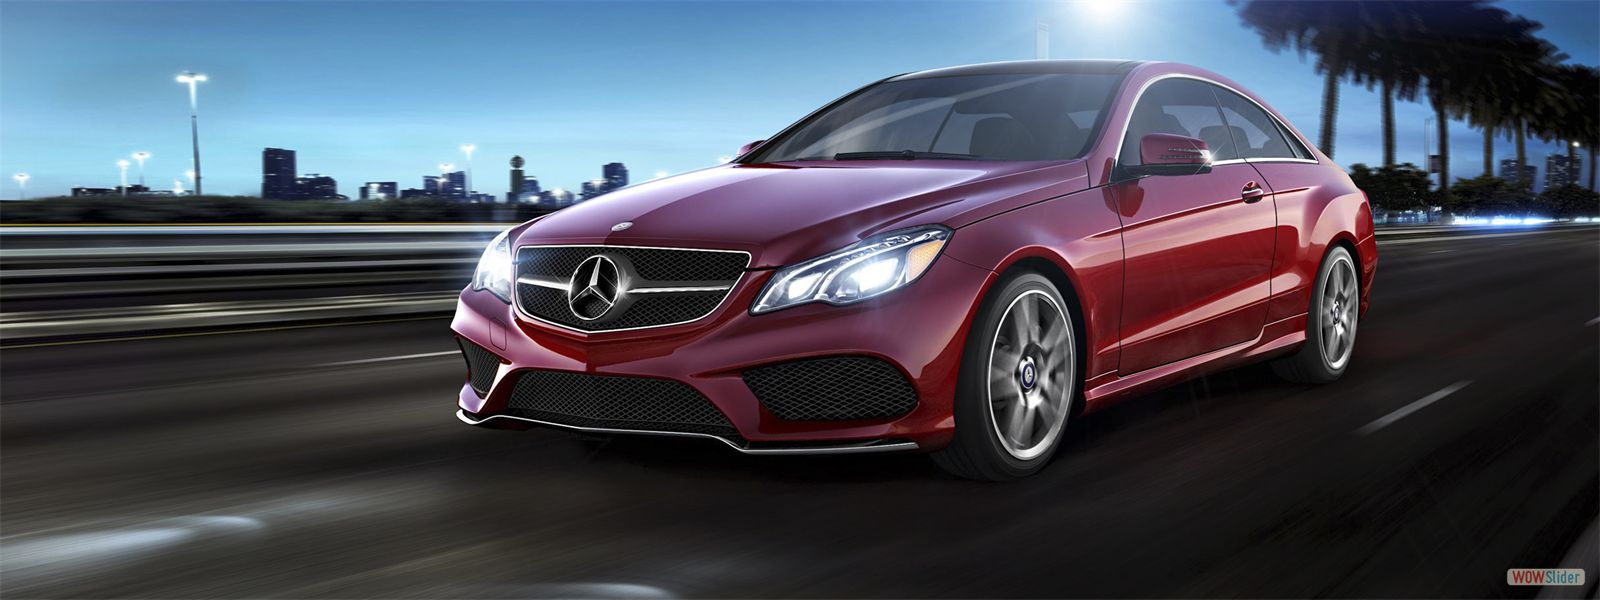 2014-E-CLASS-COUPE-GALLERY-005-WR-D